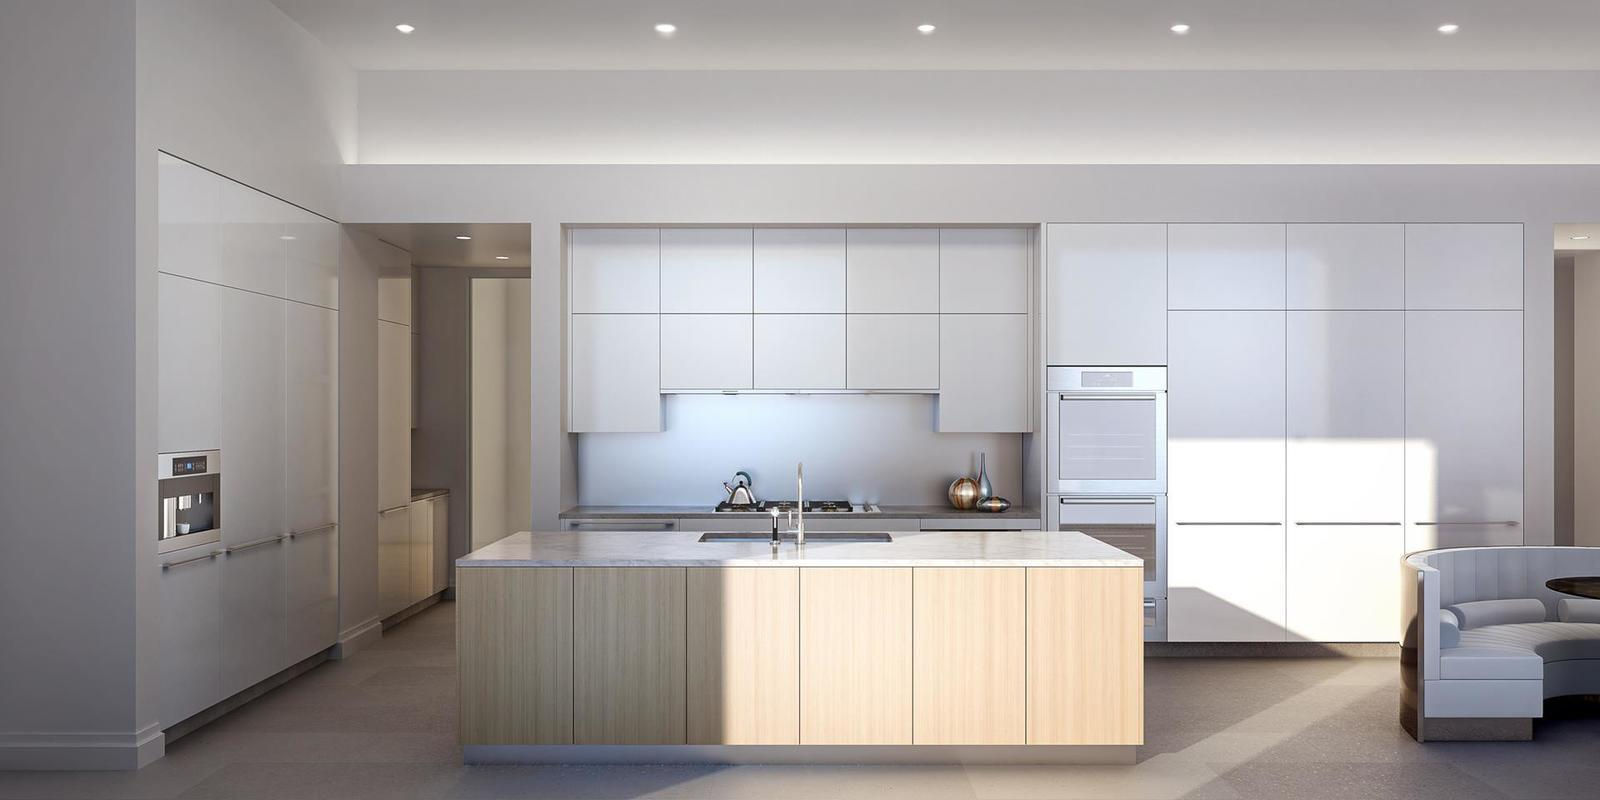 The sleek modern kitchen is outfitted with white lacquered cabinetry.